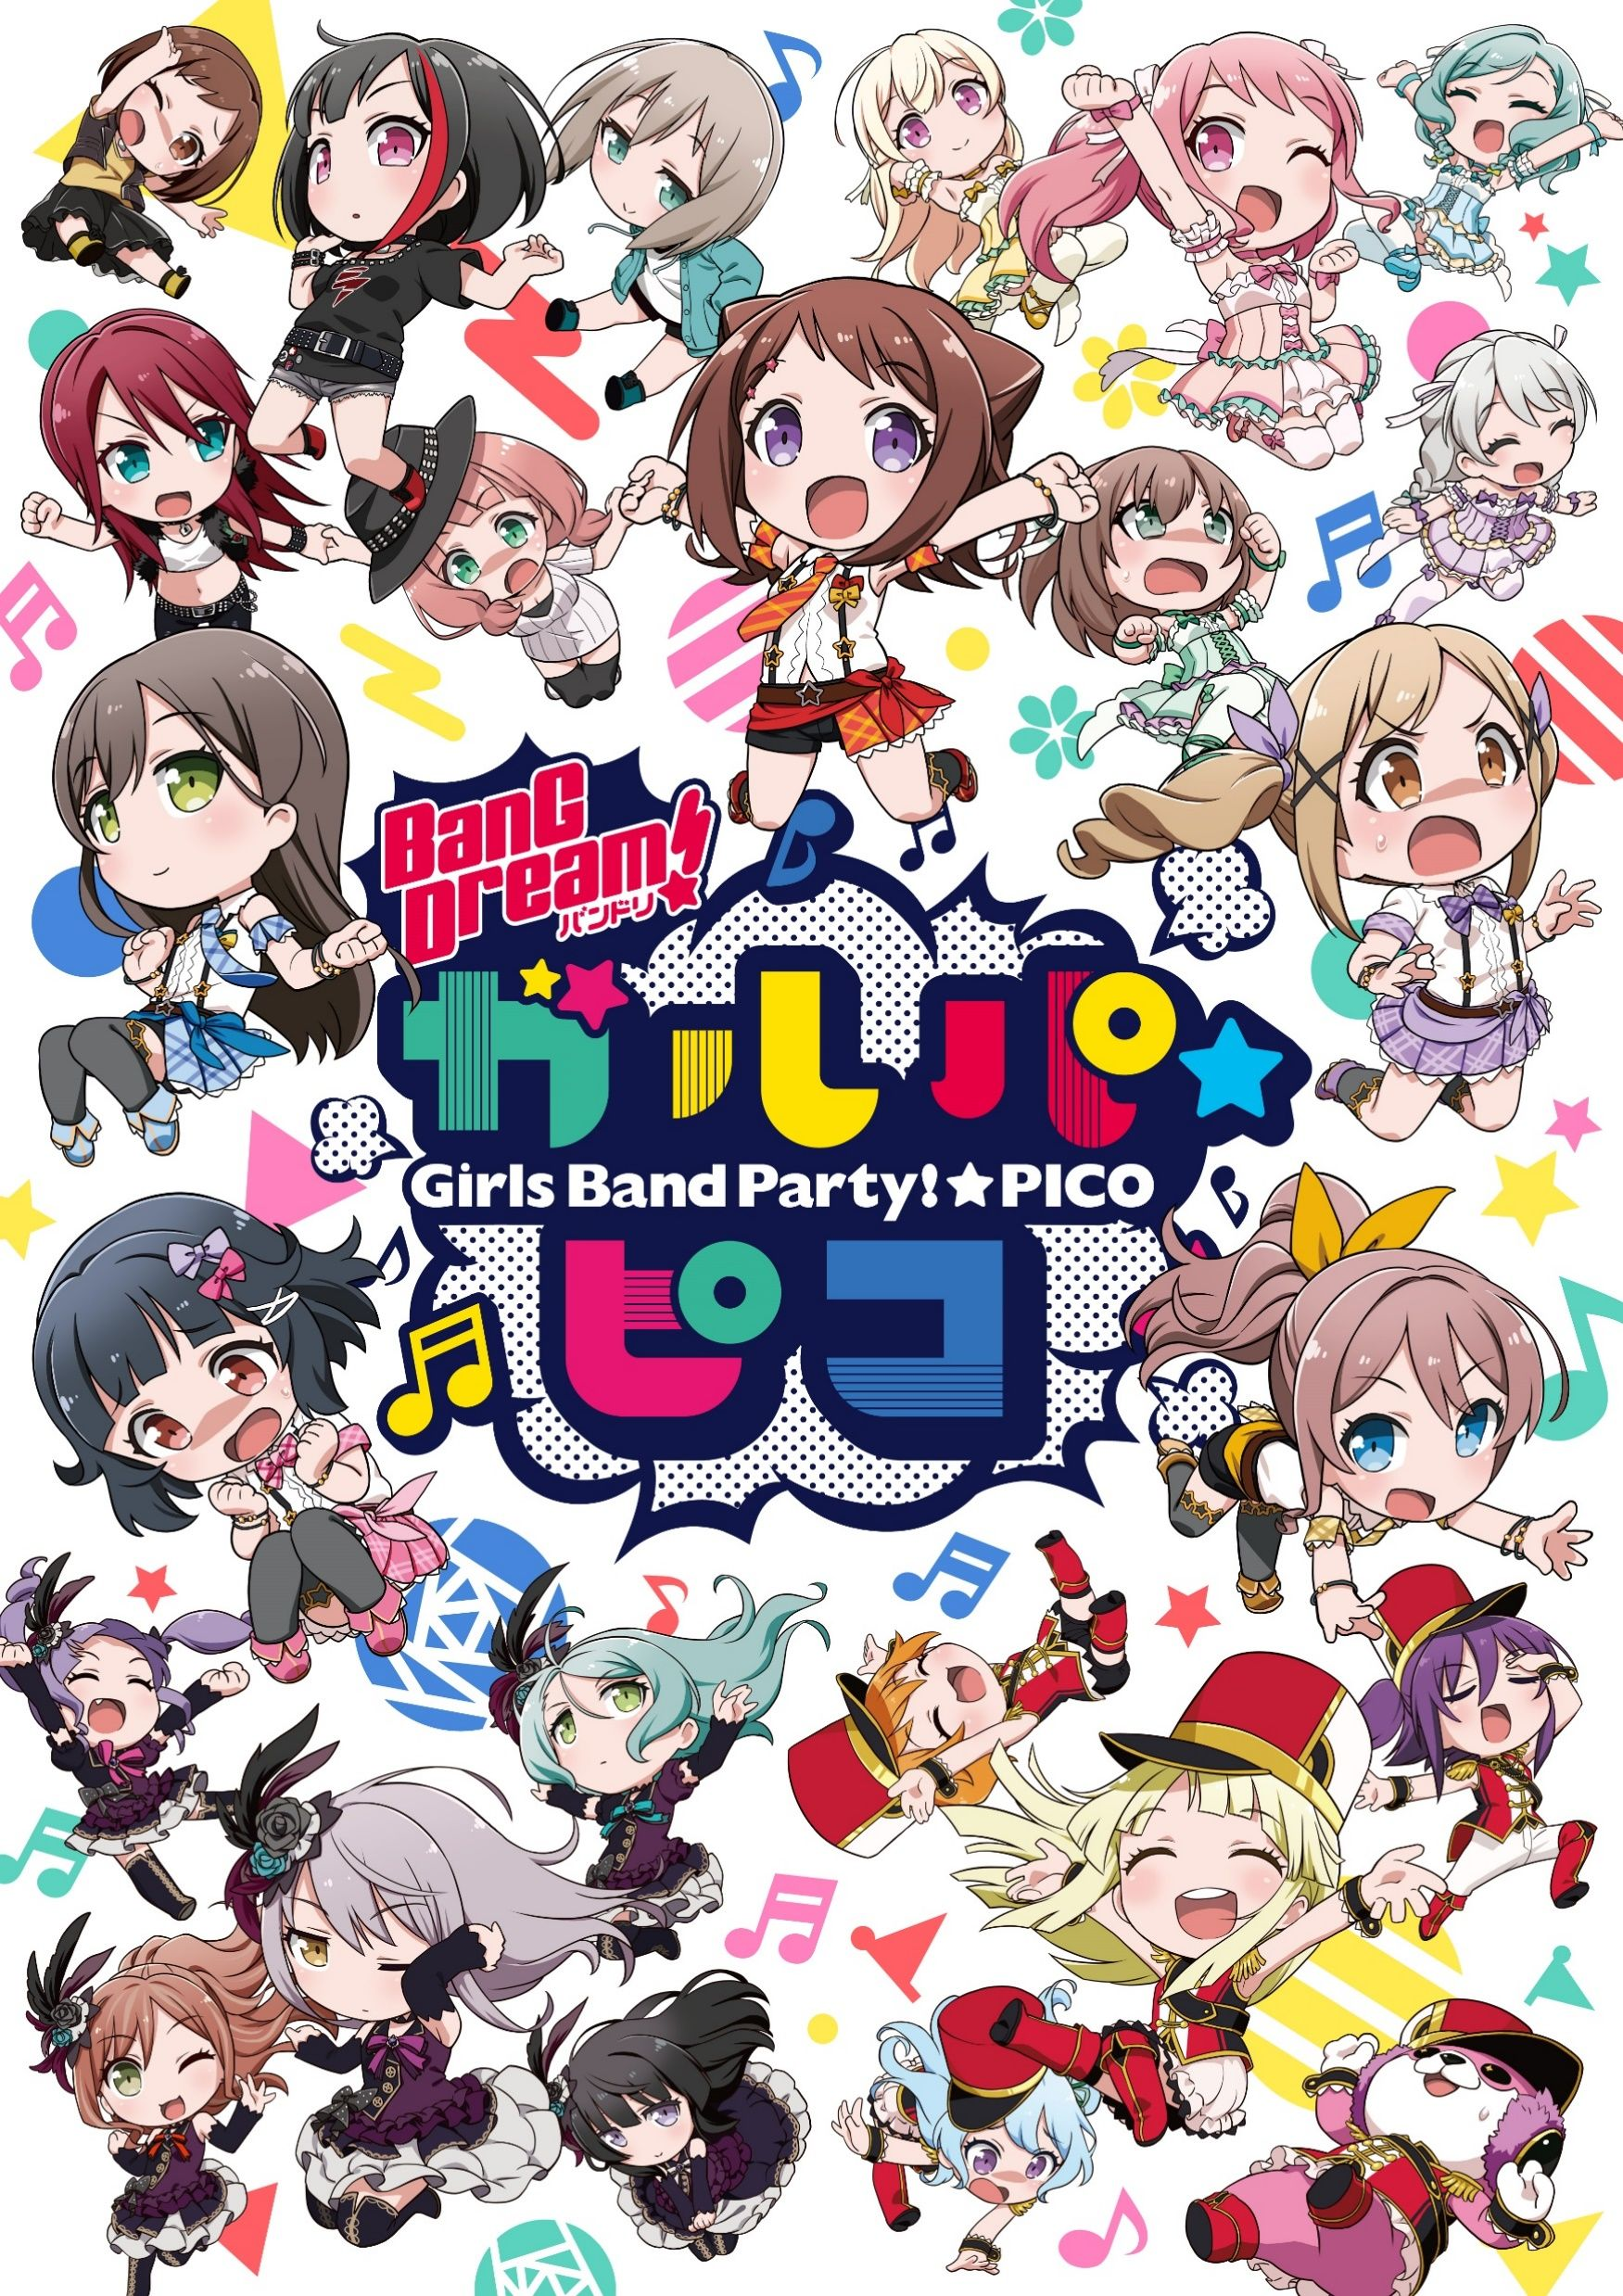 BanG Dream! Girls Band Party!☆PICO ne zaman